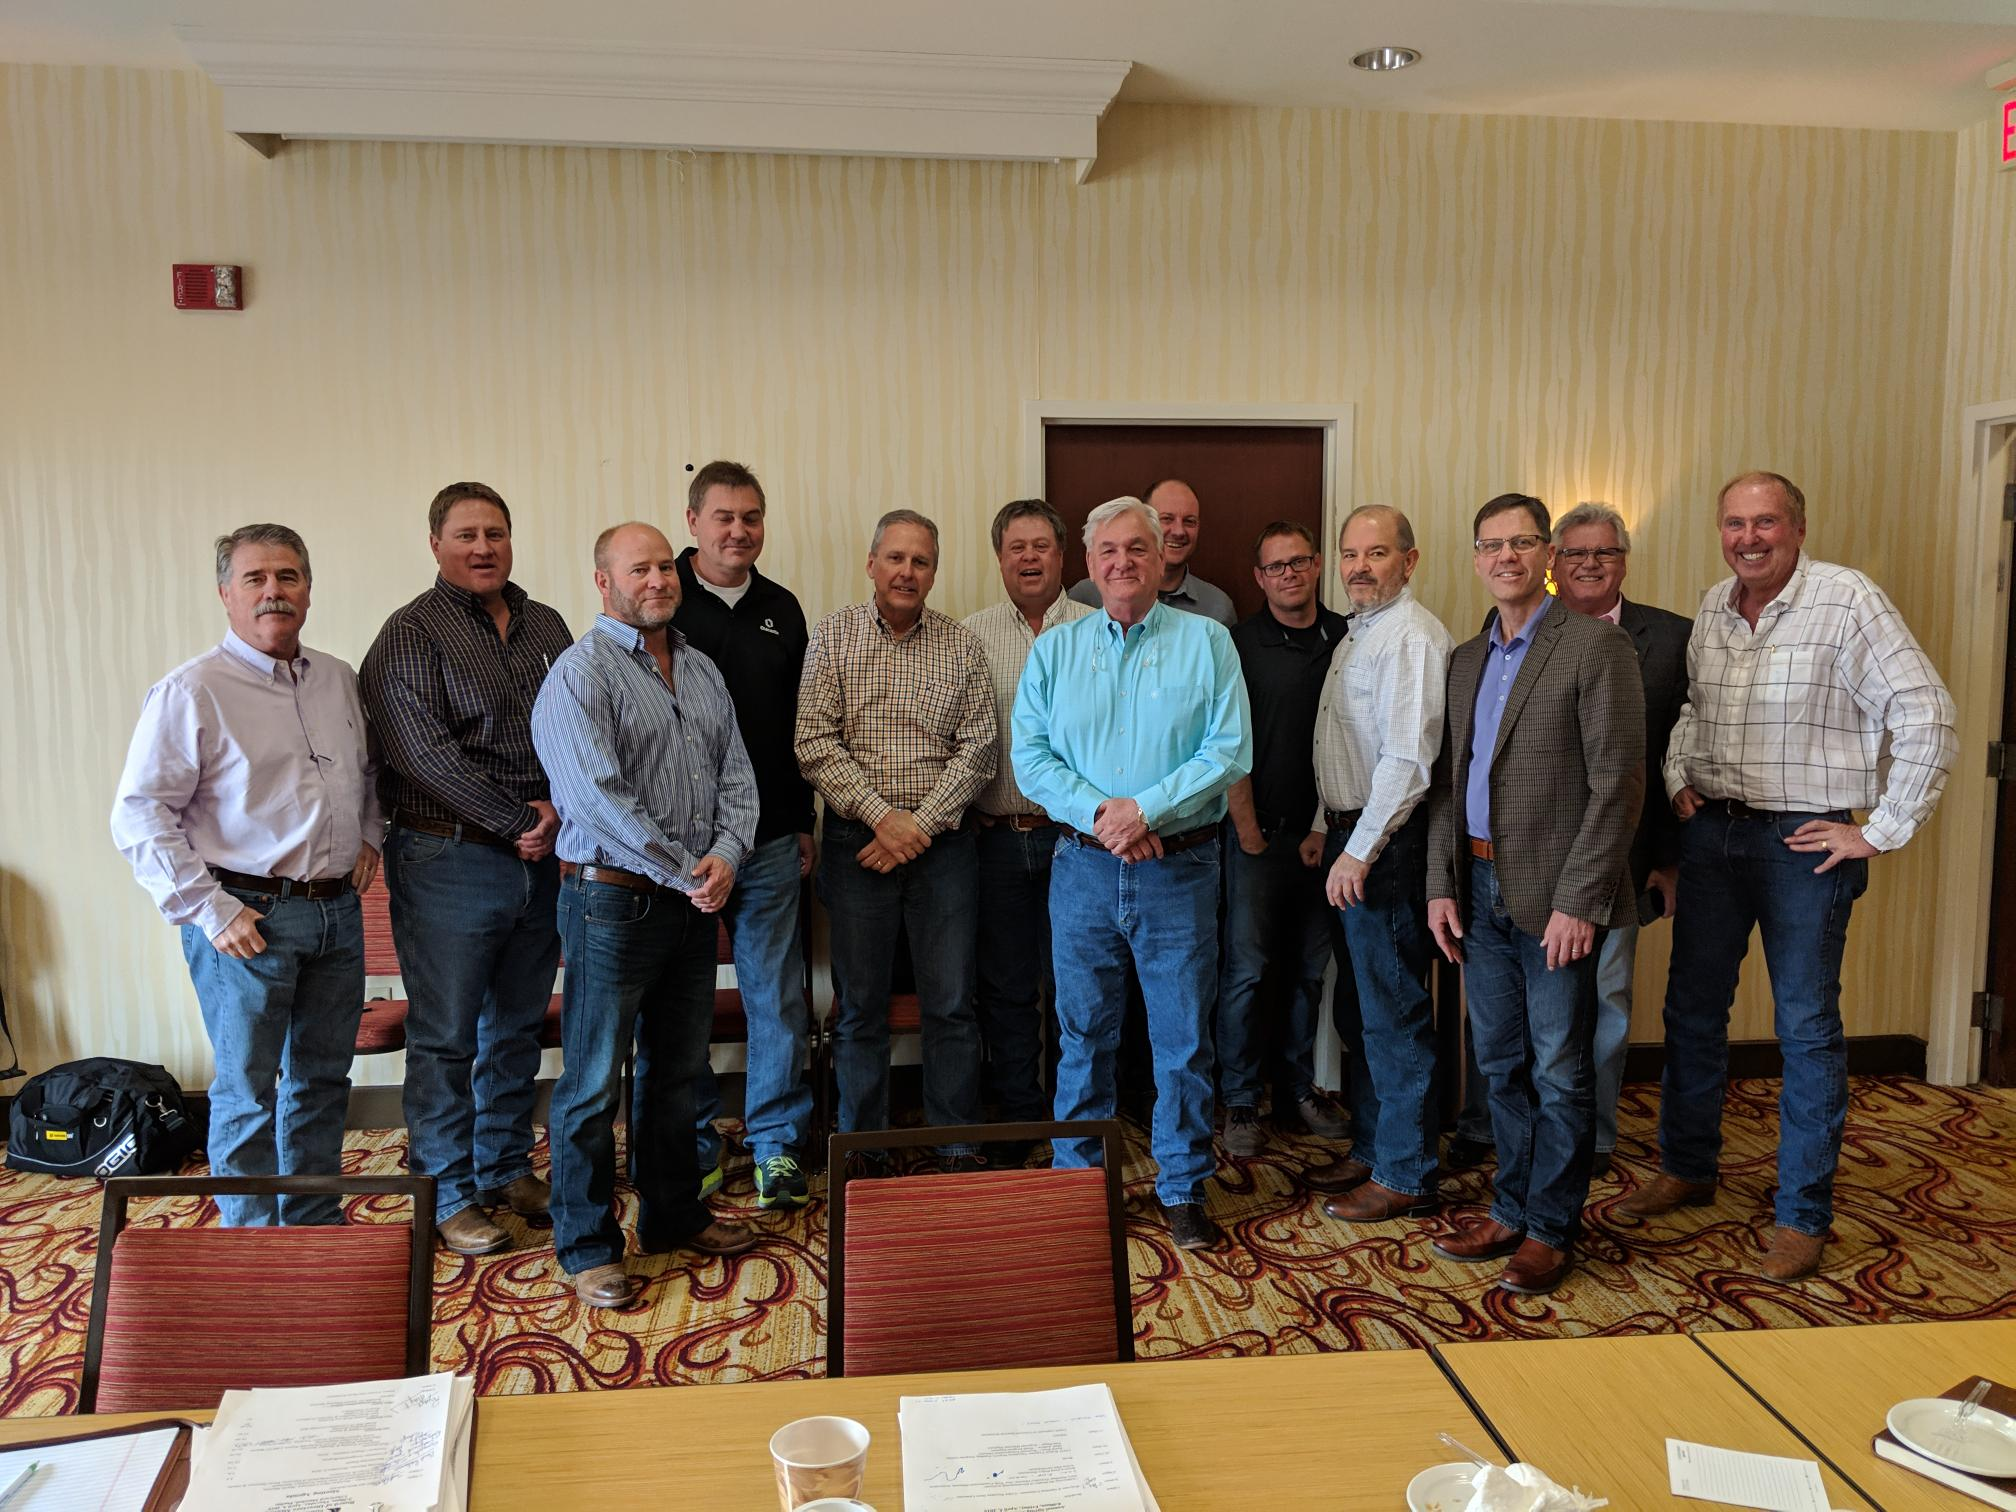 The CAPA Board of Directors from the April 2019 Board Meeting